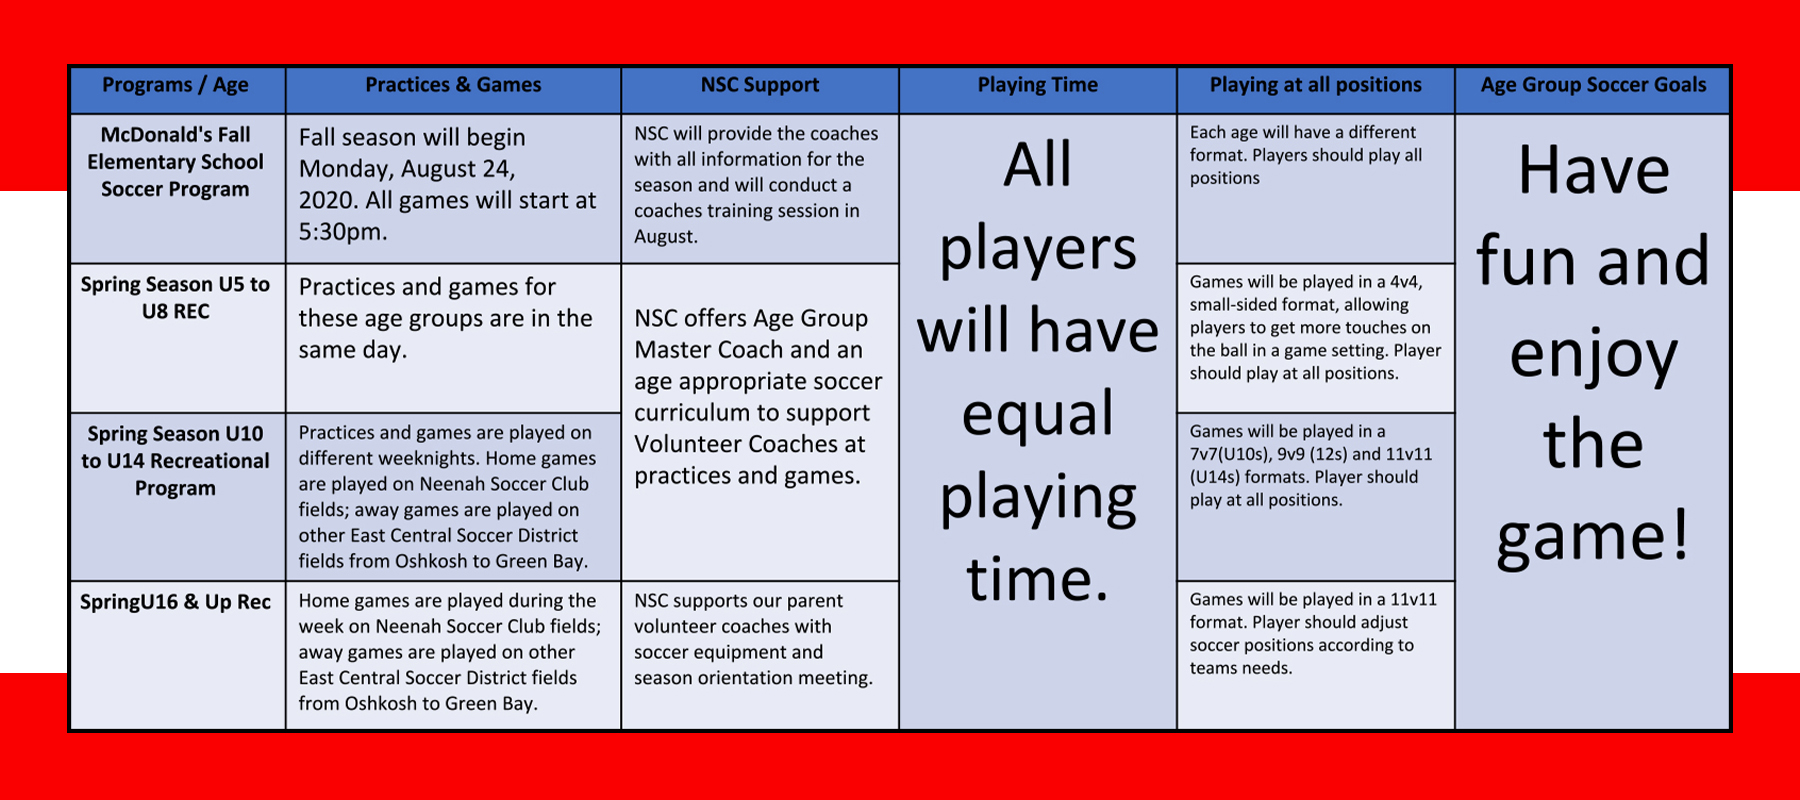 NSC Developmental Philosophy